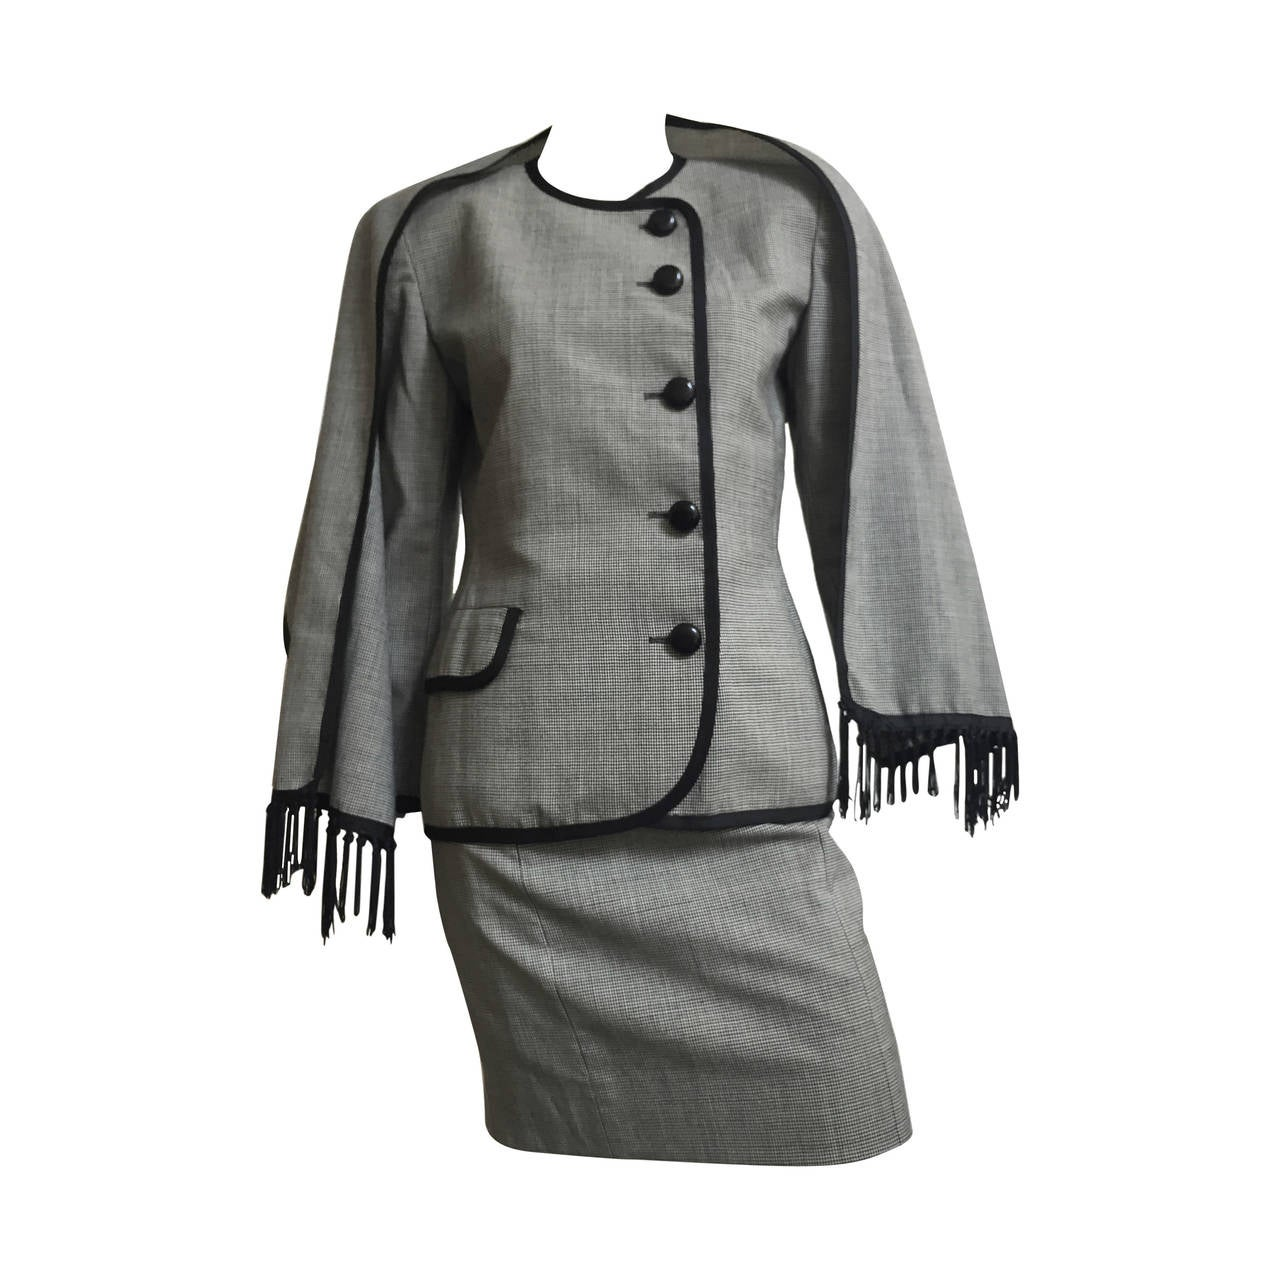 Christian Dior Houndstooth Skirt Suit with Scarf